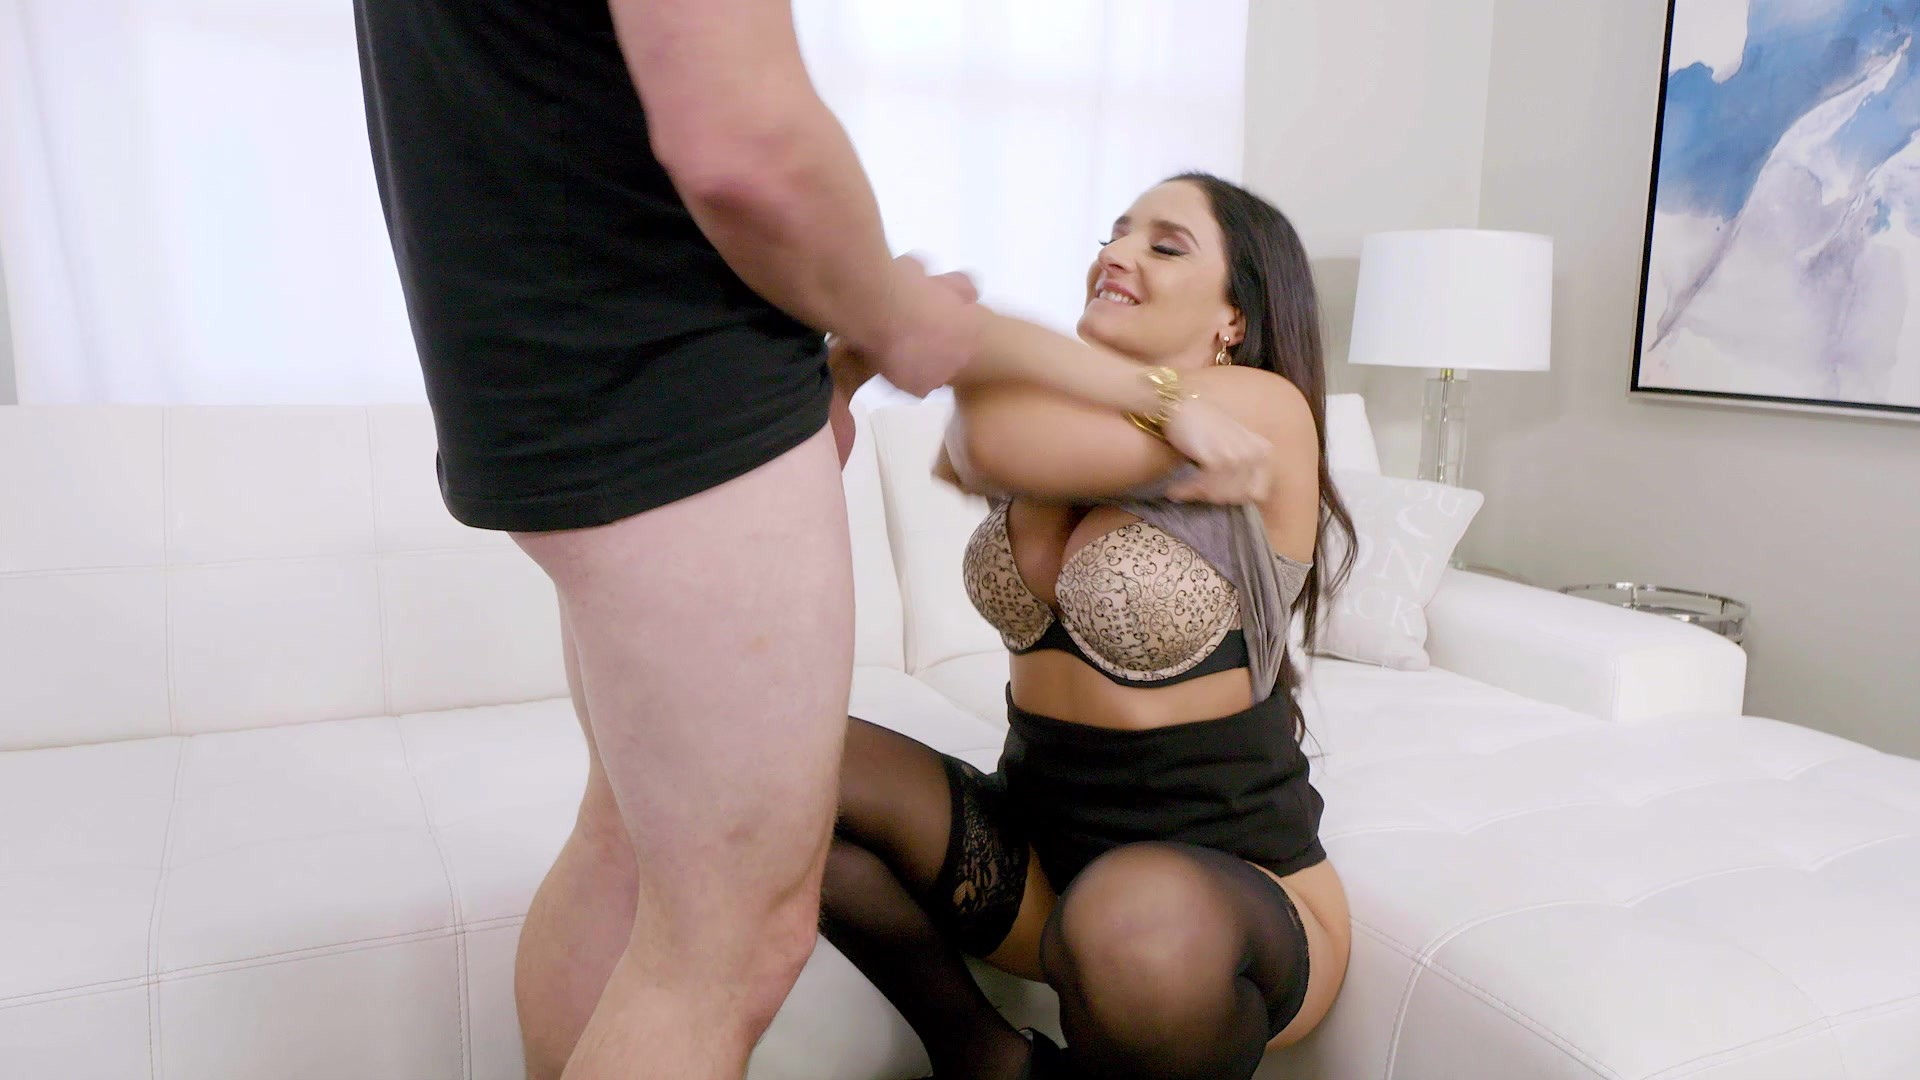 Shemale Fucks Tied Up Guy